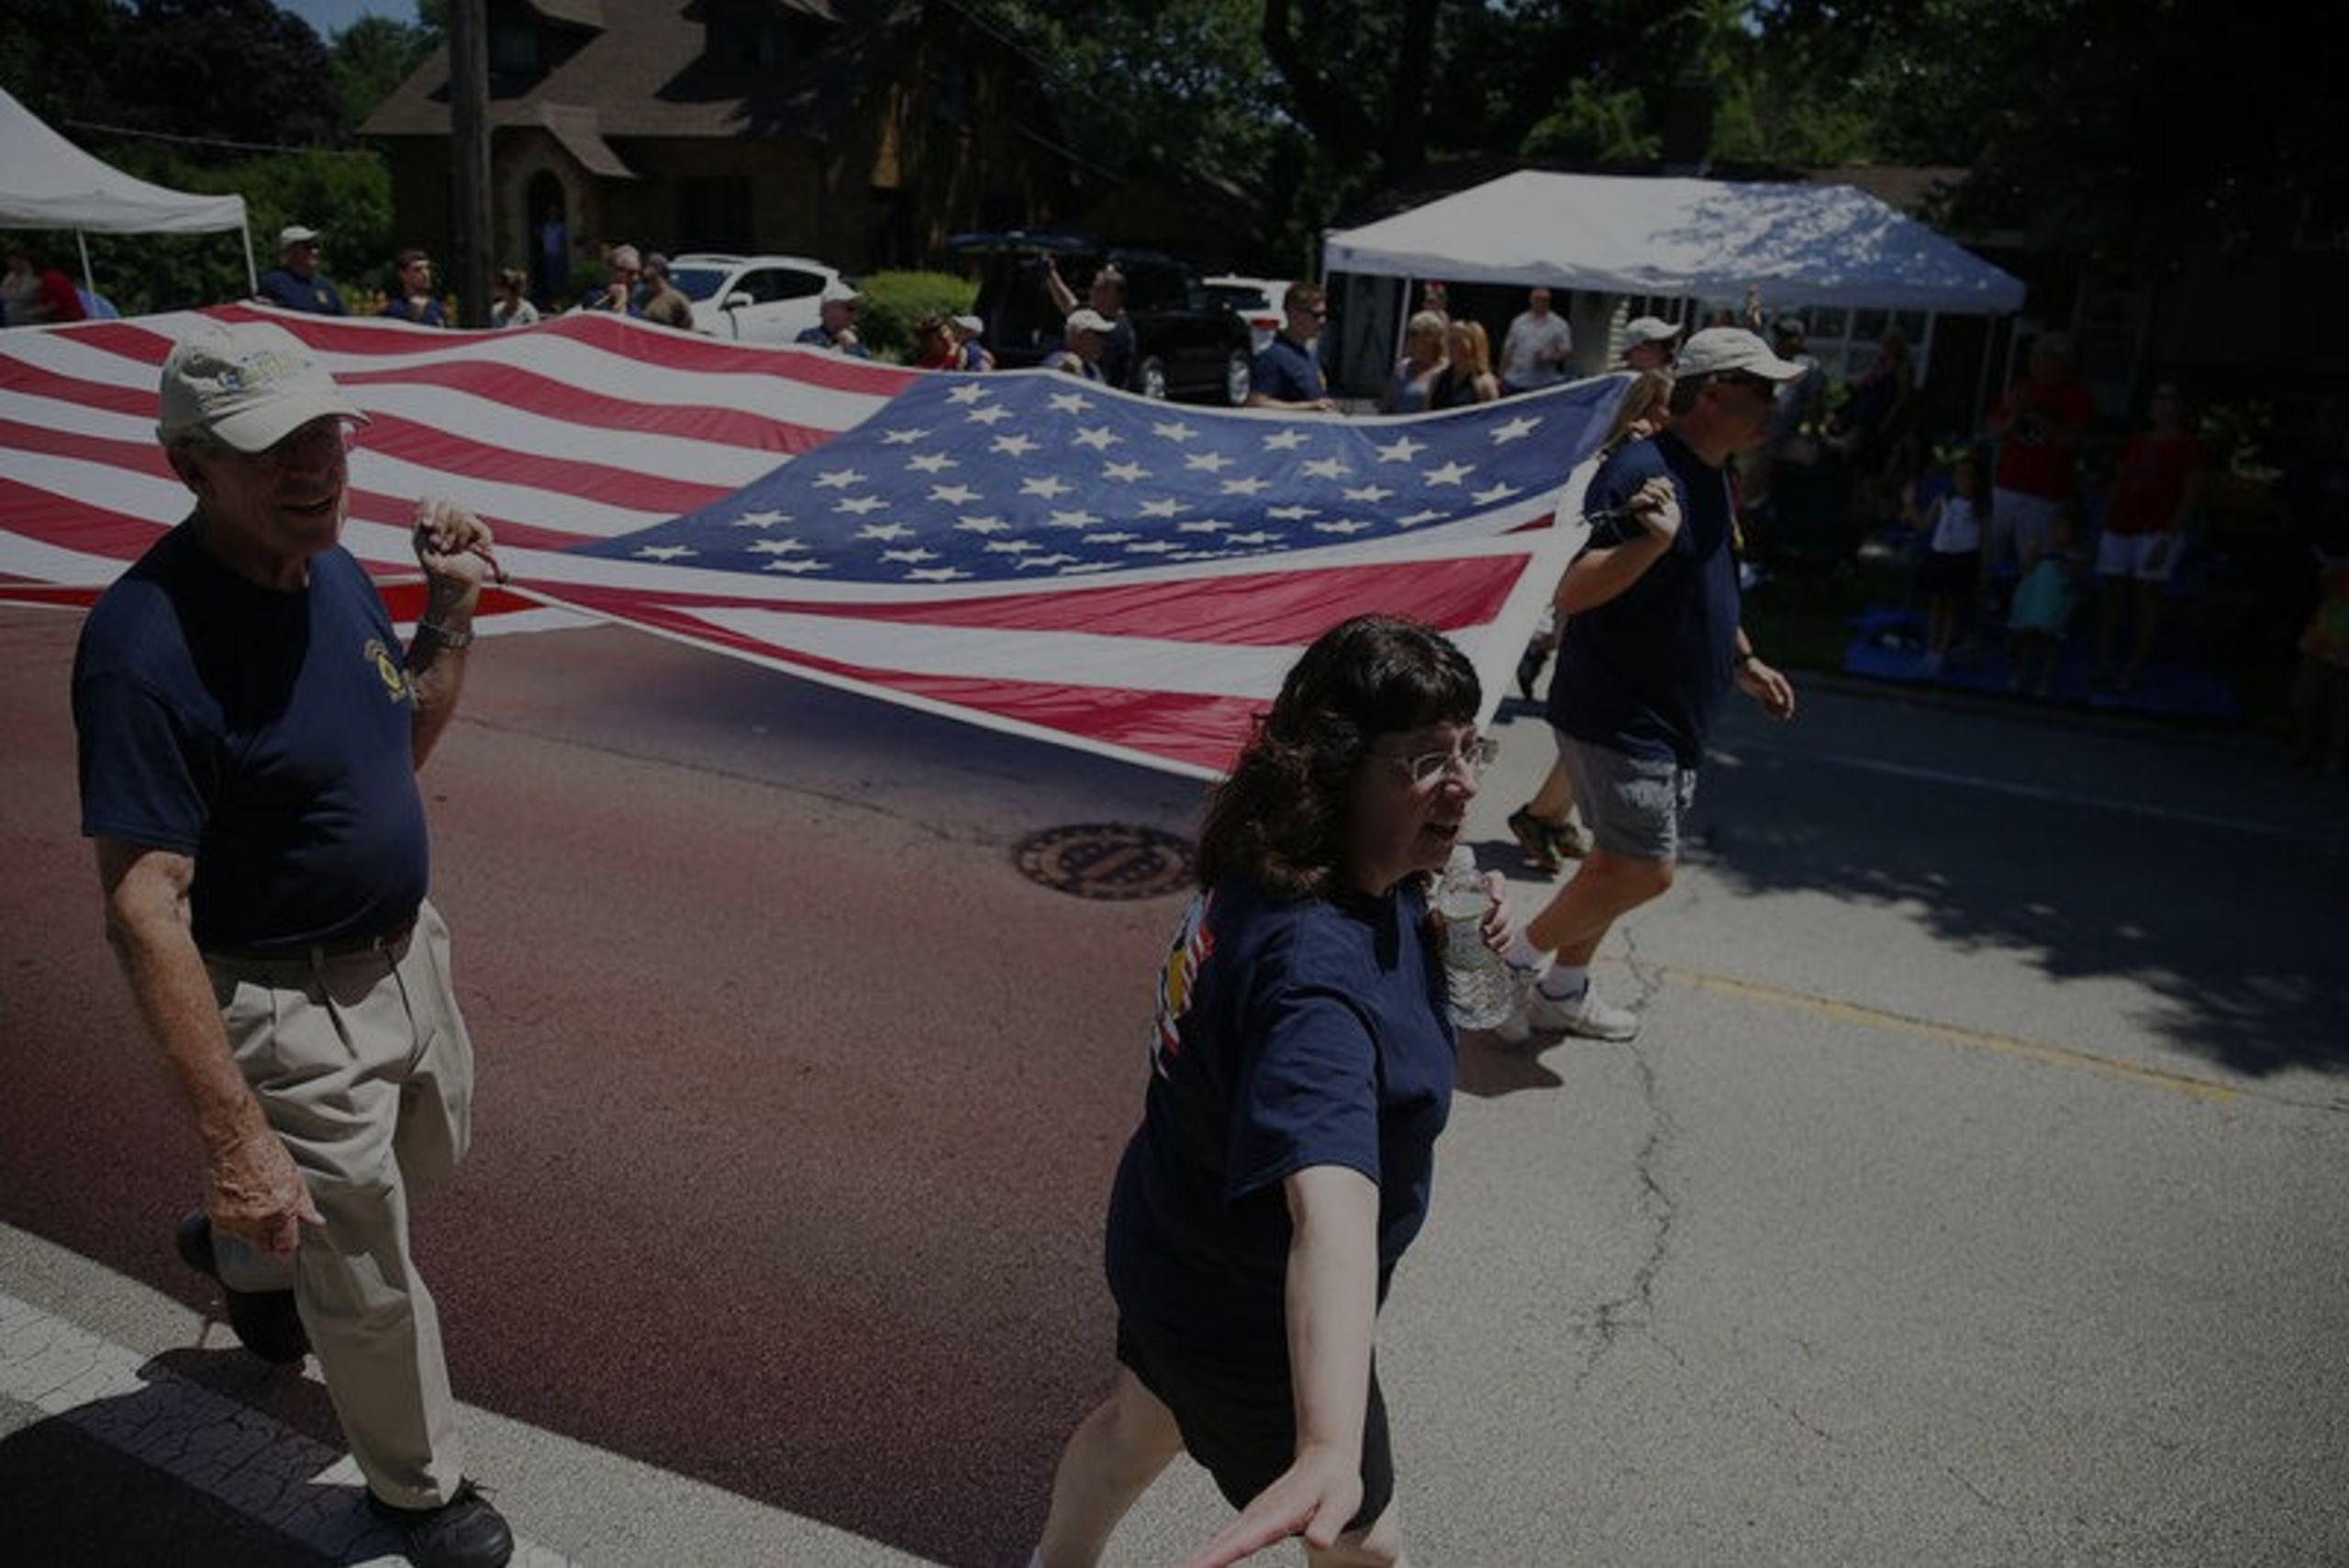 2019 Fourth of July events in McHenry County